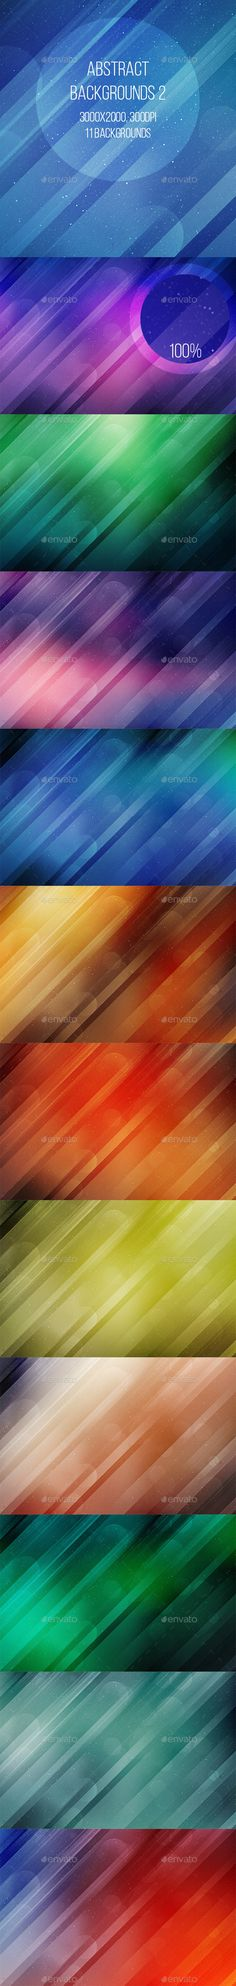 Abstract Backgrounds 230002000 res. 300 dpi Very high quality 11 backgrounds 11JPG images Please dont forget to rate it. 1st volum